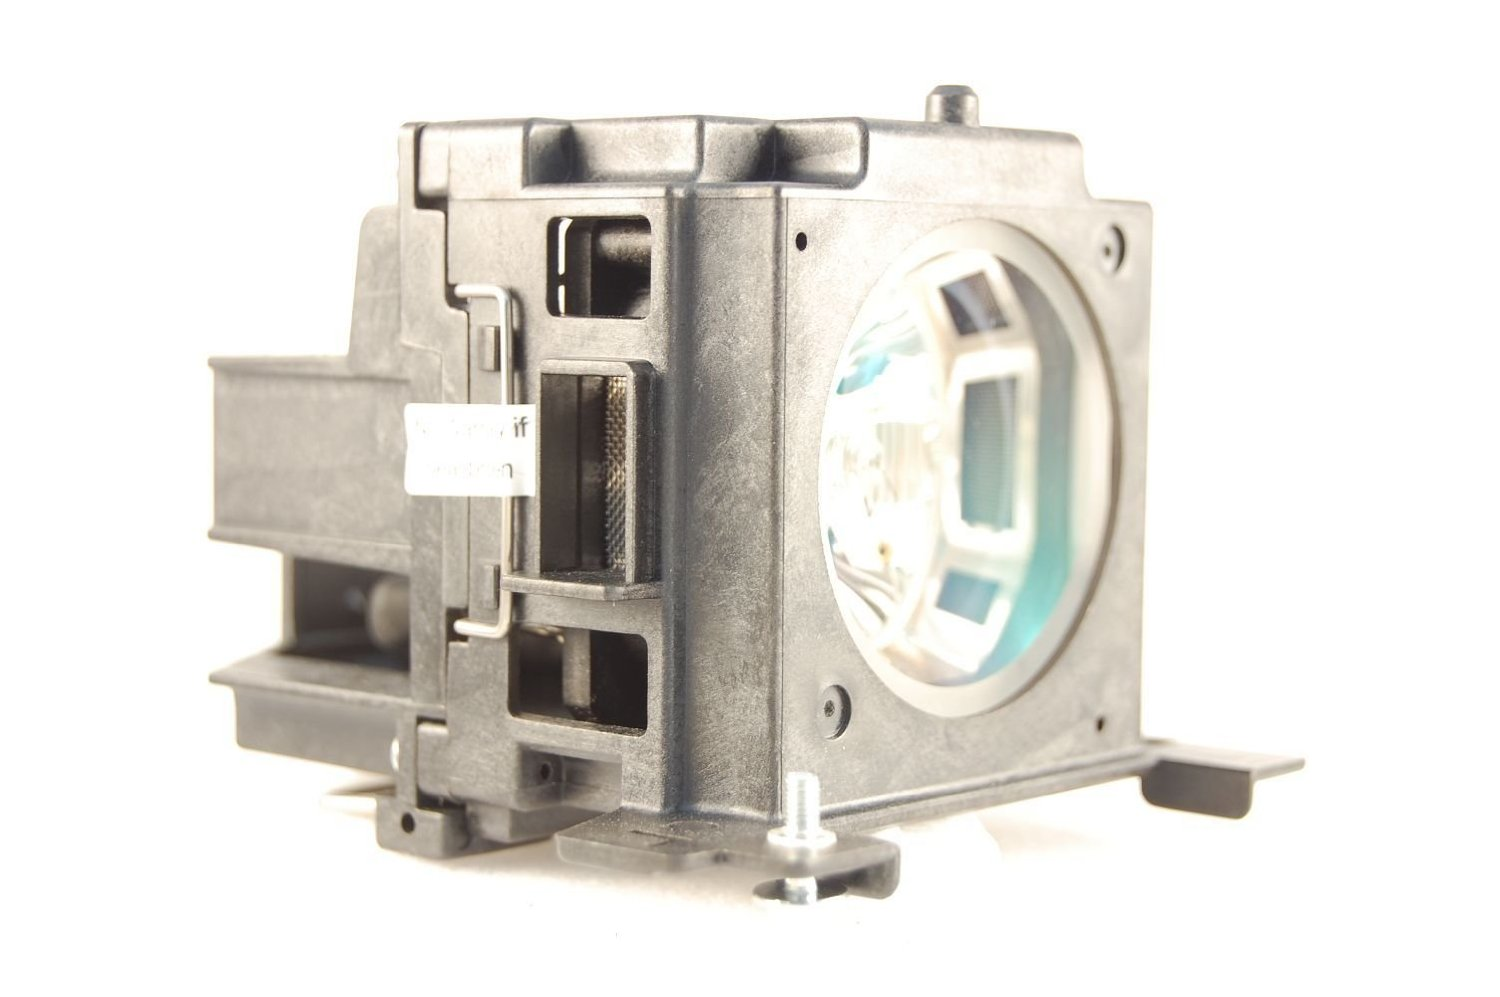 DT00757 DT-00757 for HITACHI CP-X251 CP-X256 ED-X10 ED-X1092 ED-X12 ED-X15 ED-X20 EDX22 MP-J1EF Projector Lamp Bulb with housing compatible projector lamp for hitachi dt01151 cp rx79 cp rx82 cp rx93 ed x26